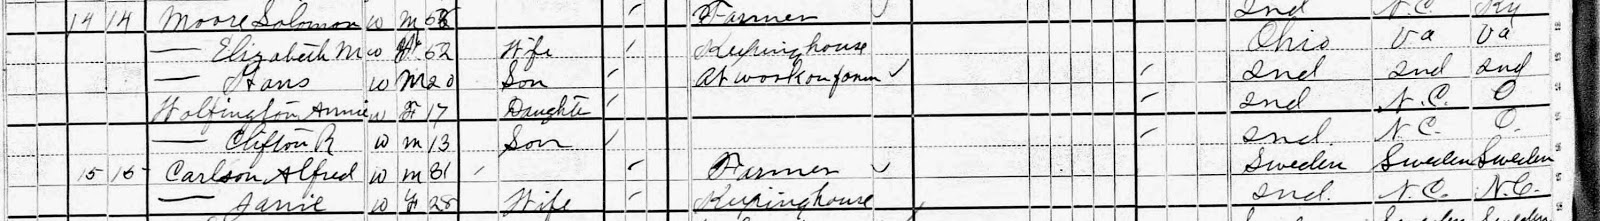 Climbing my Family Tree: 1880 Census: Elizabeth M. Bixler Wolfington Moore